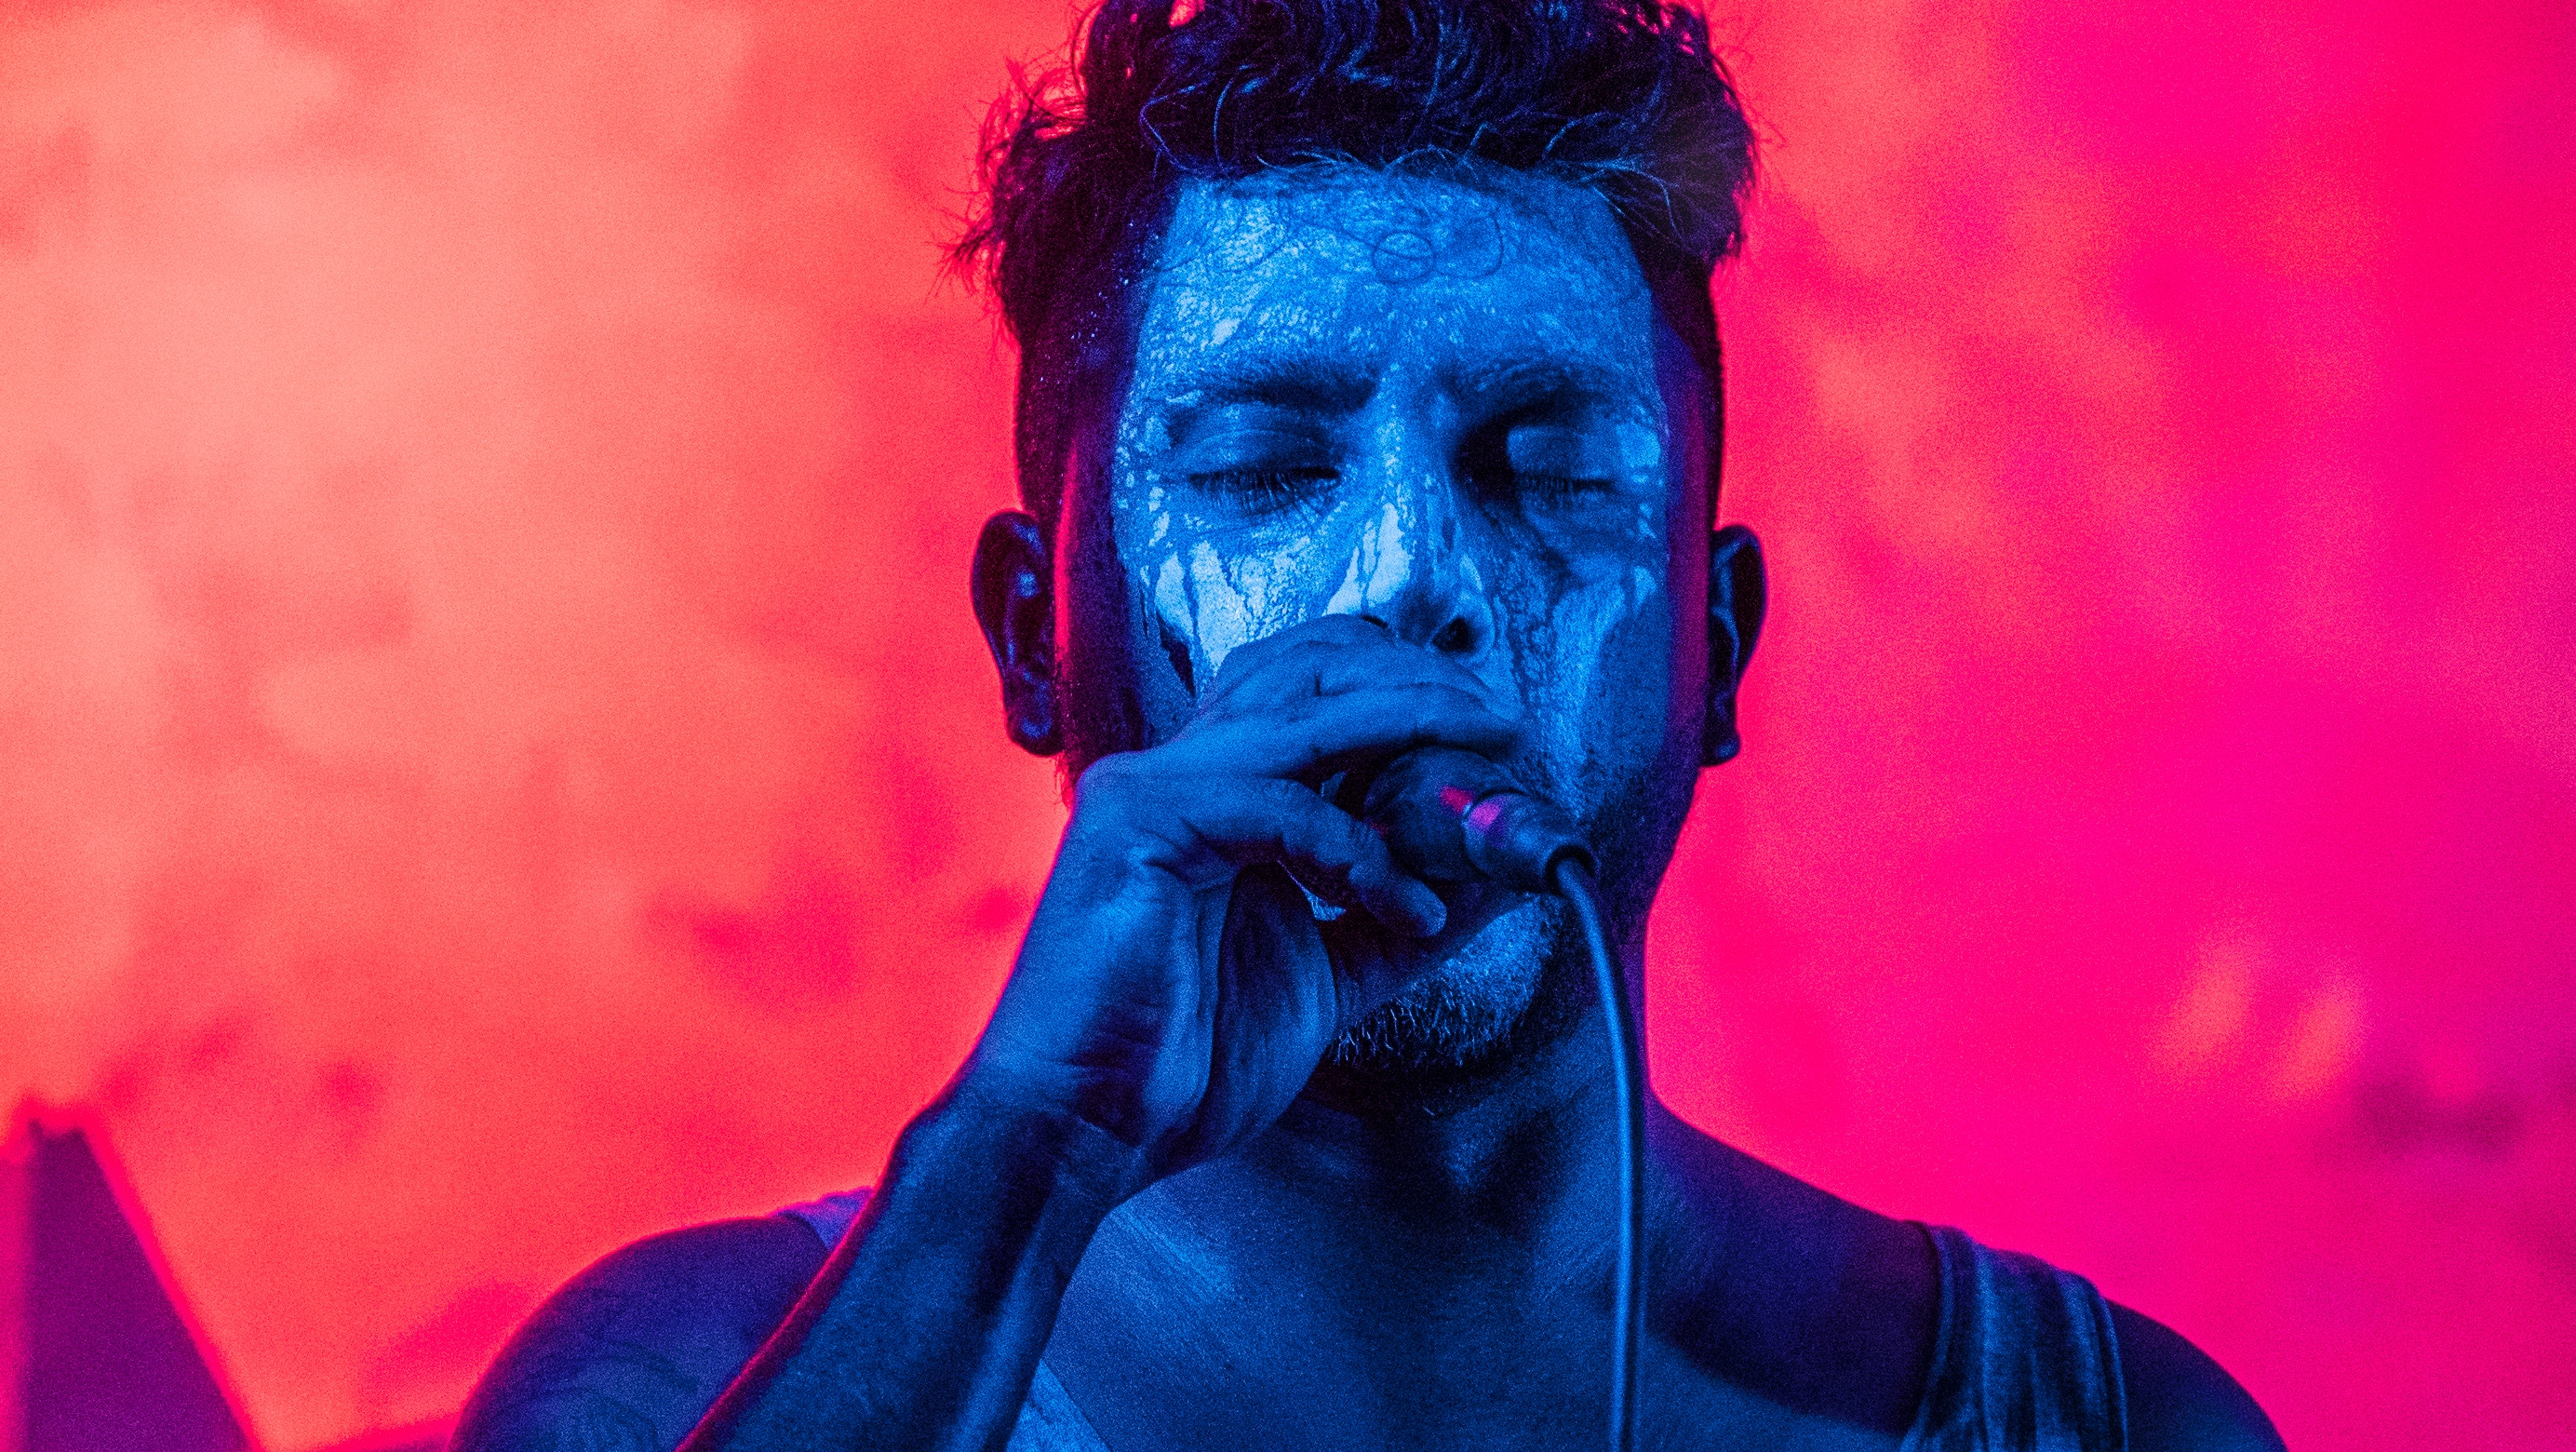 Male singer, blue lighting, red background | Elise Franklin Therapy & Coaching | Entertainment Industry Counseling | Therapy for Bands, Musicians, Artists, Actors & Performers | Los Angeles, CA 90064 | Los Angeles, CA 90017